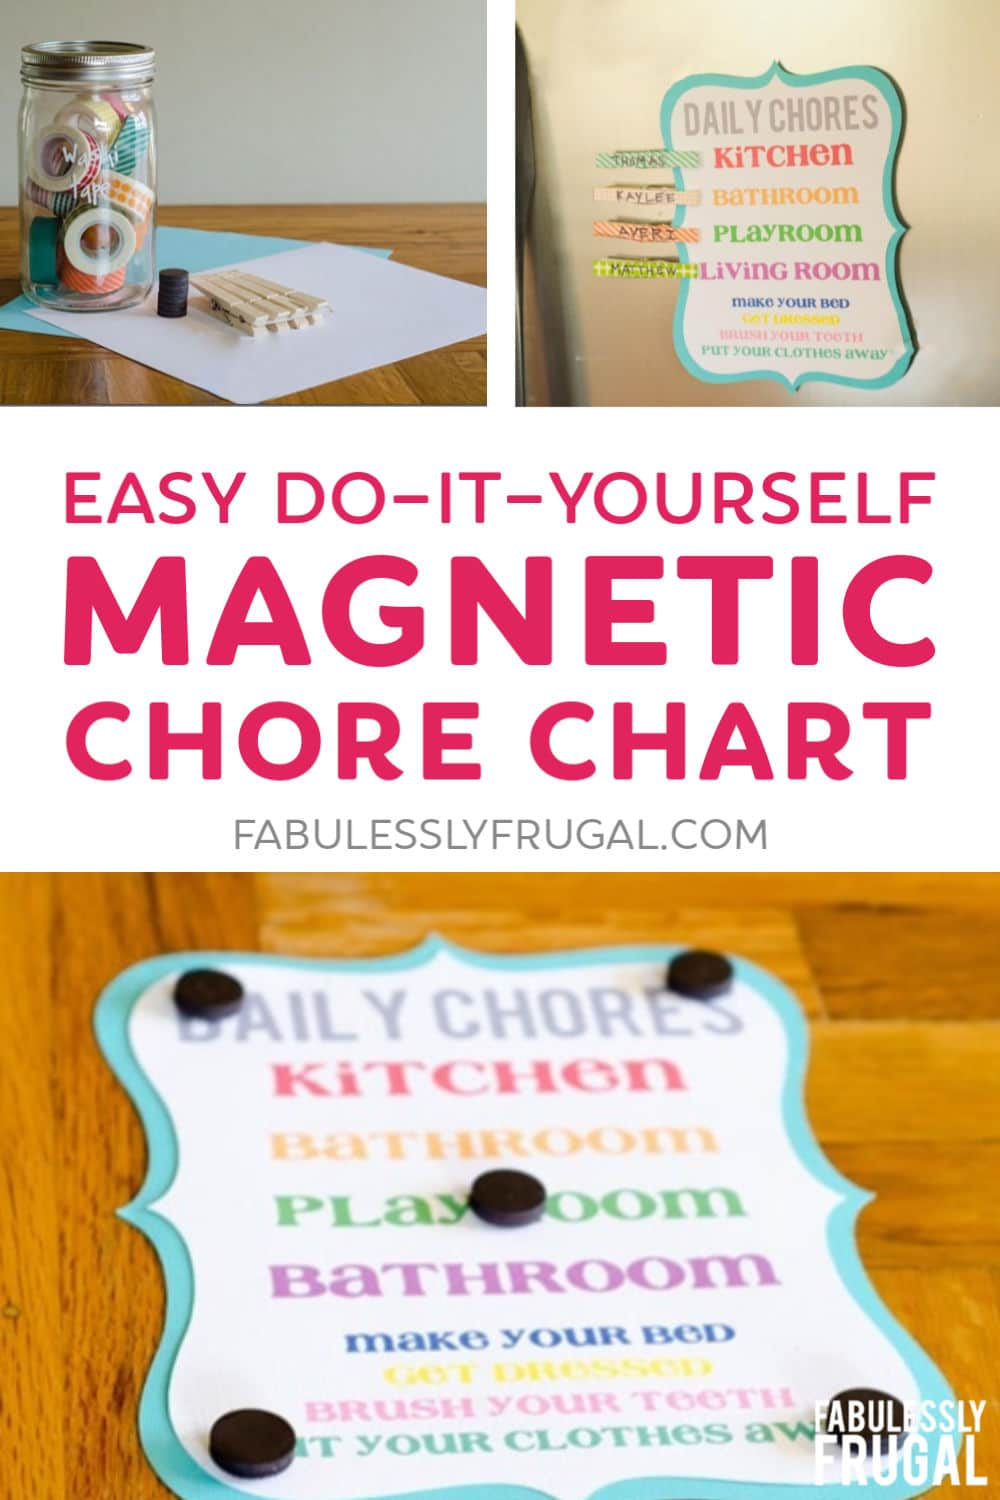 Easy magnetic chore chart DIY